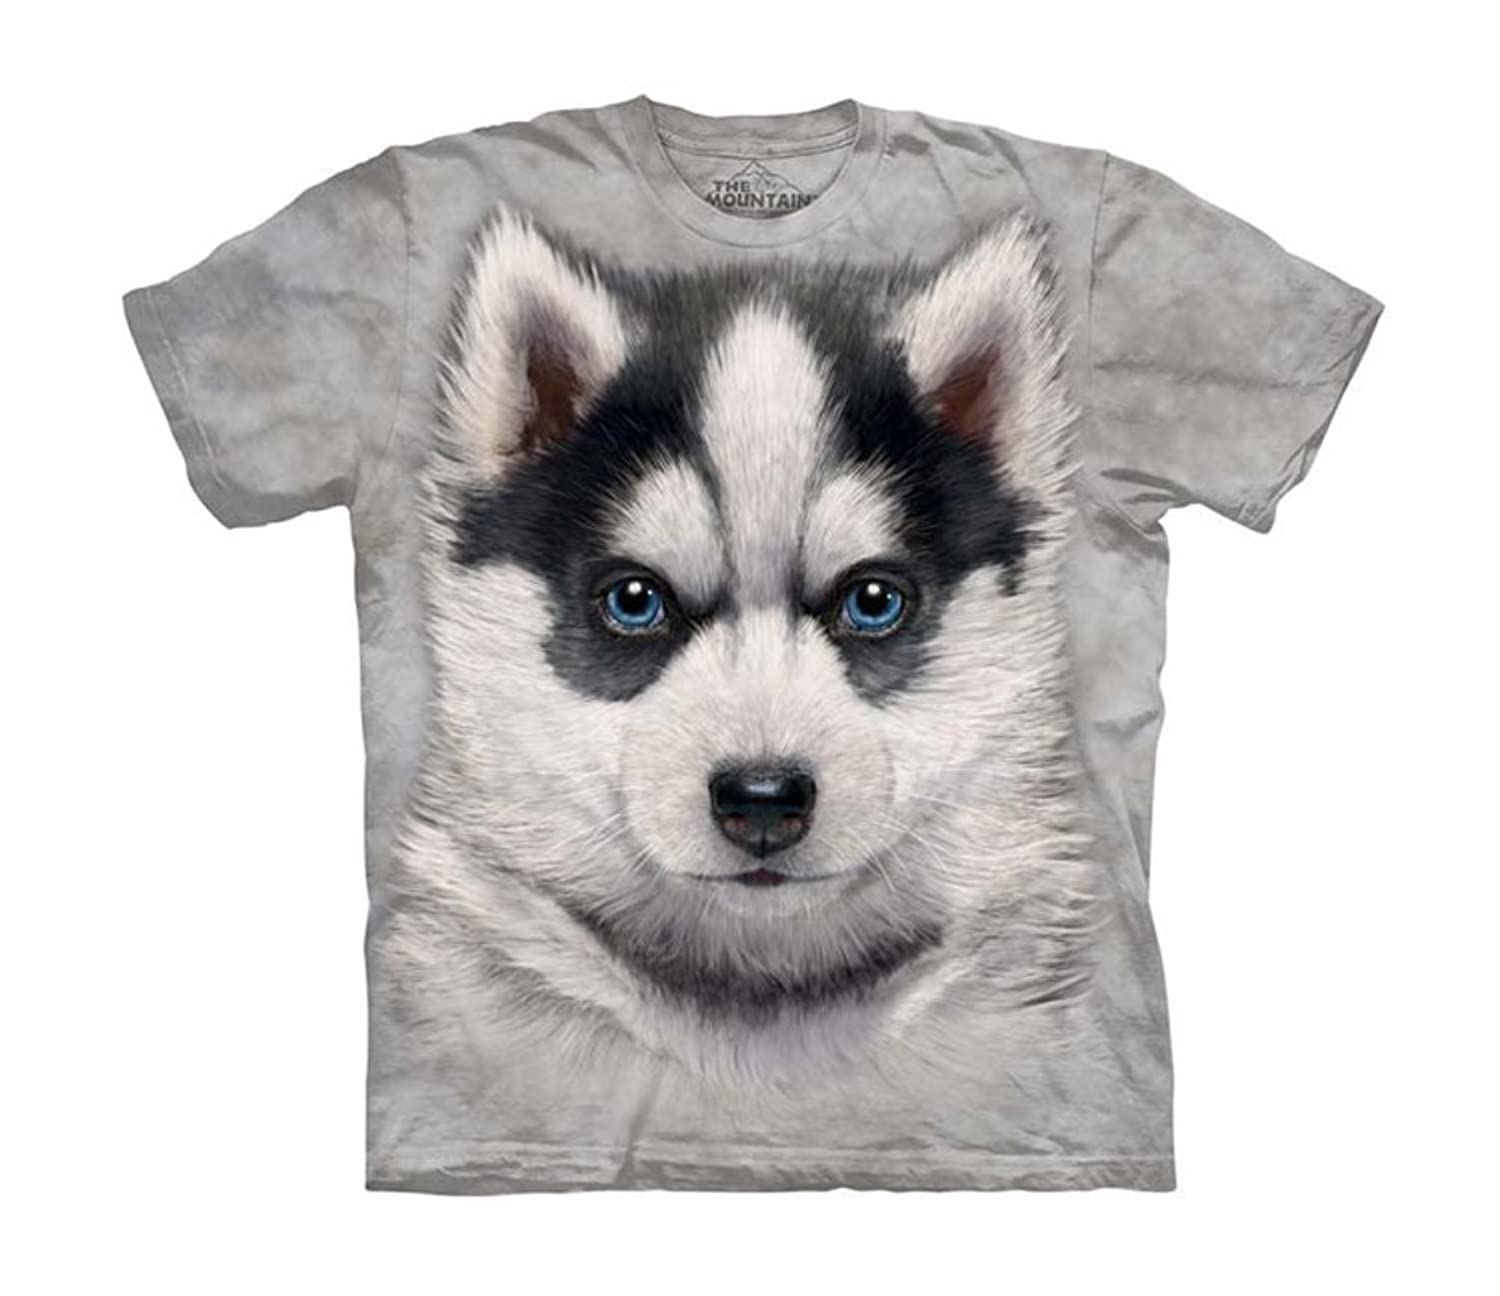 Husky and Malamute awesomely detailed HUGE FACE t-shirts. 61-NCb9X8lL._UL1500_